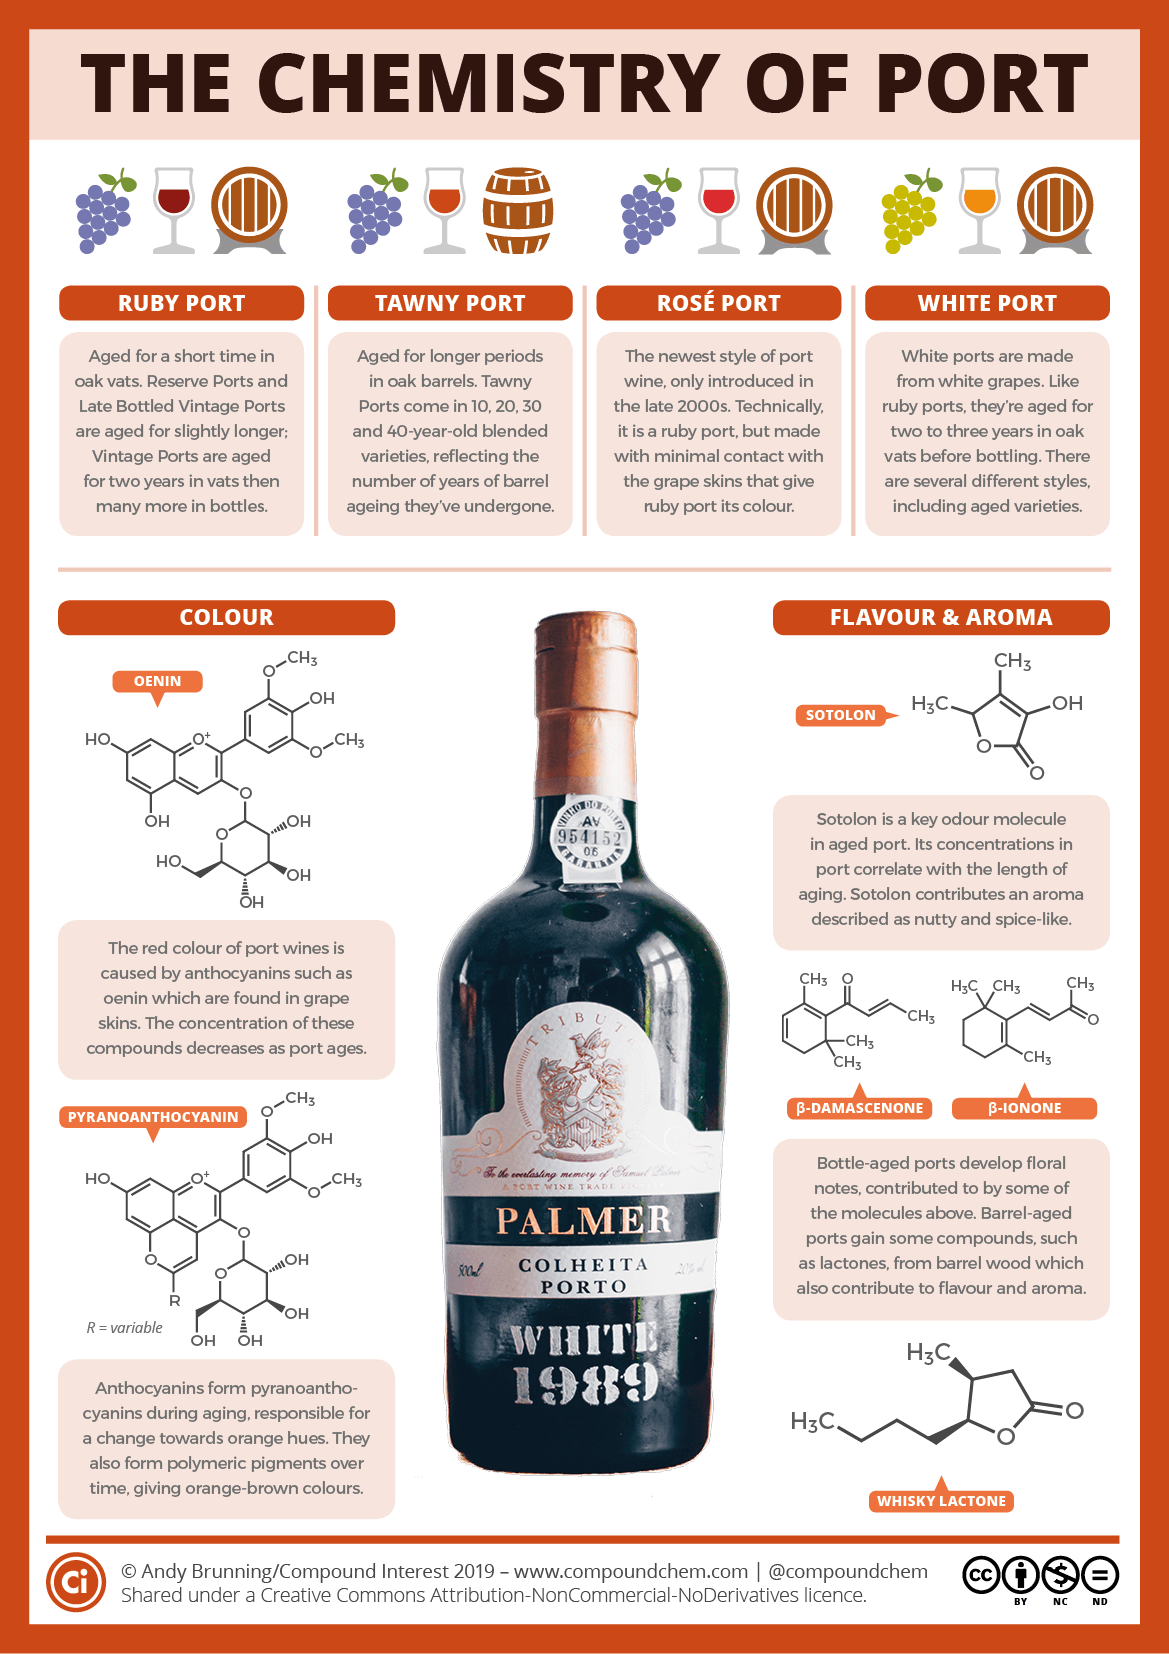 Port wine chemistry: Types, colours, ageing and flavours